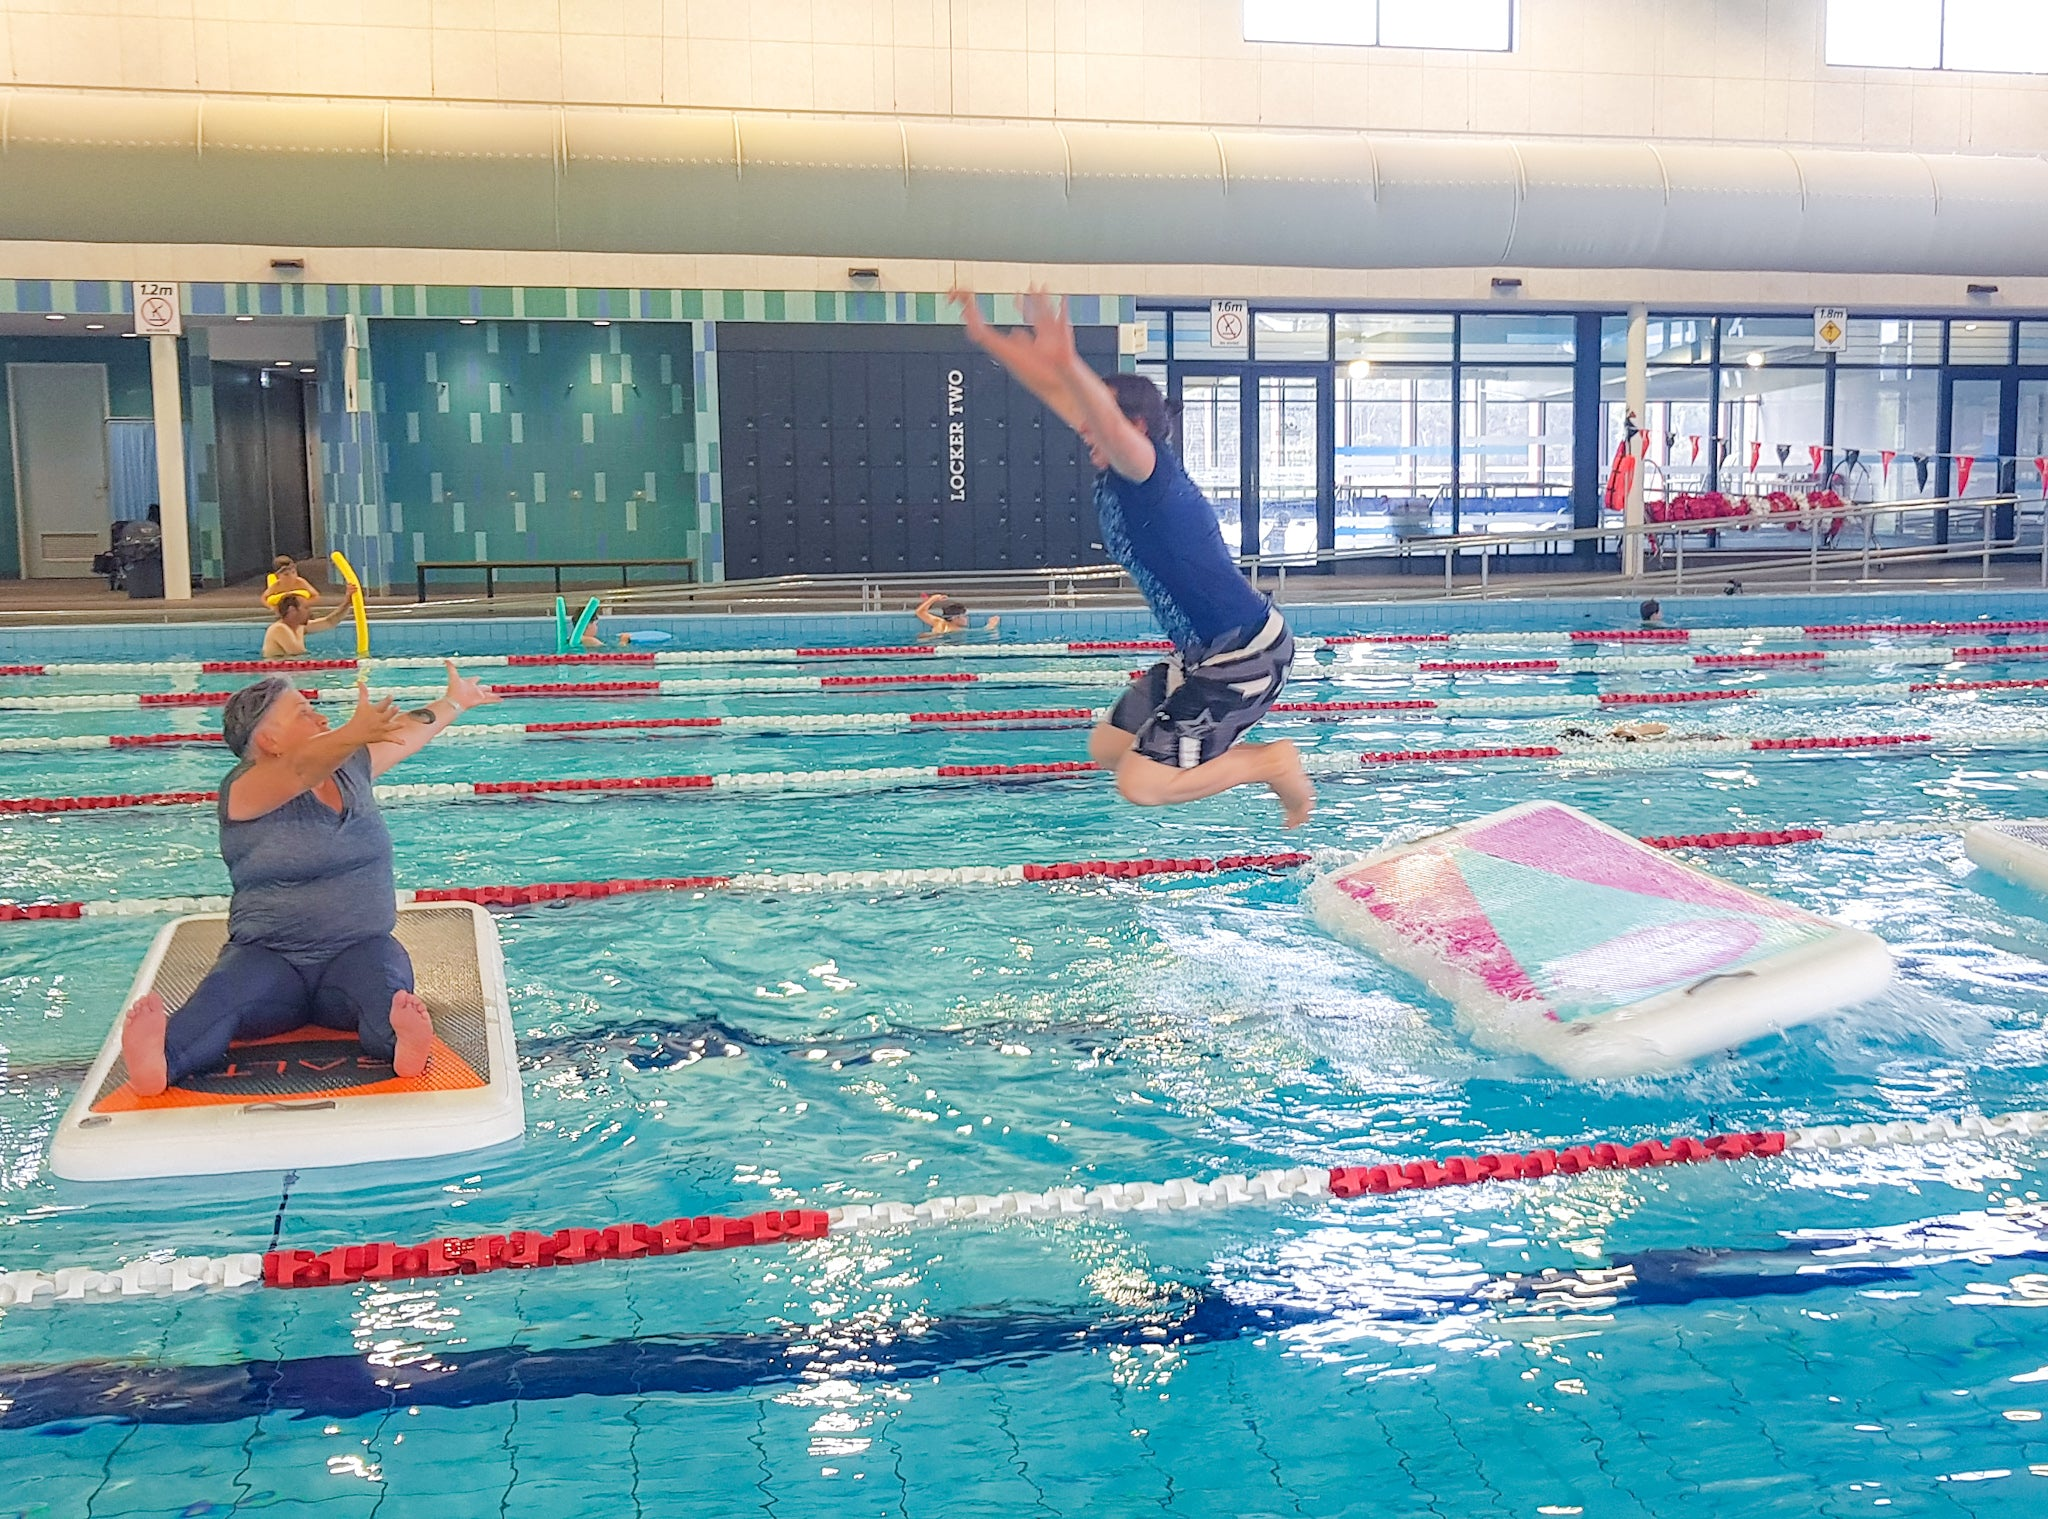 Fleurieu Aquatic Centre instructor training Salti